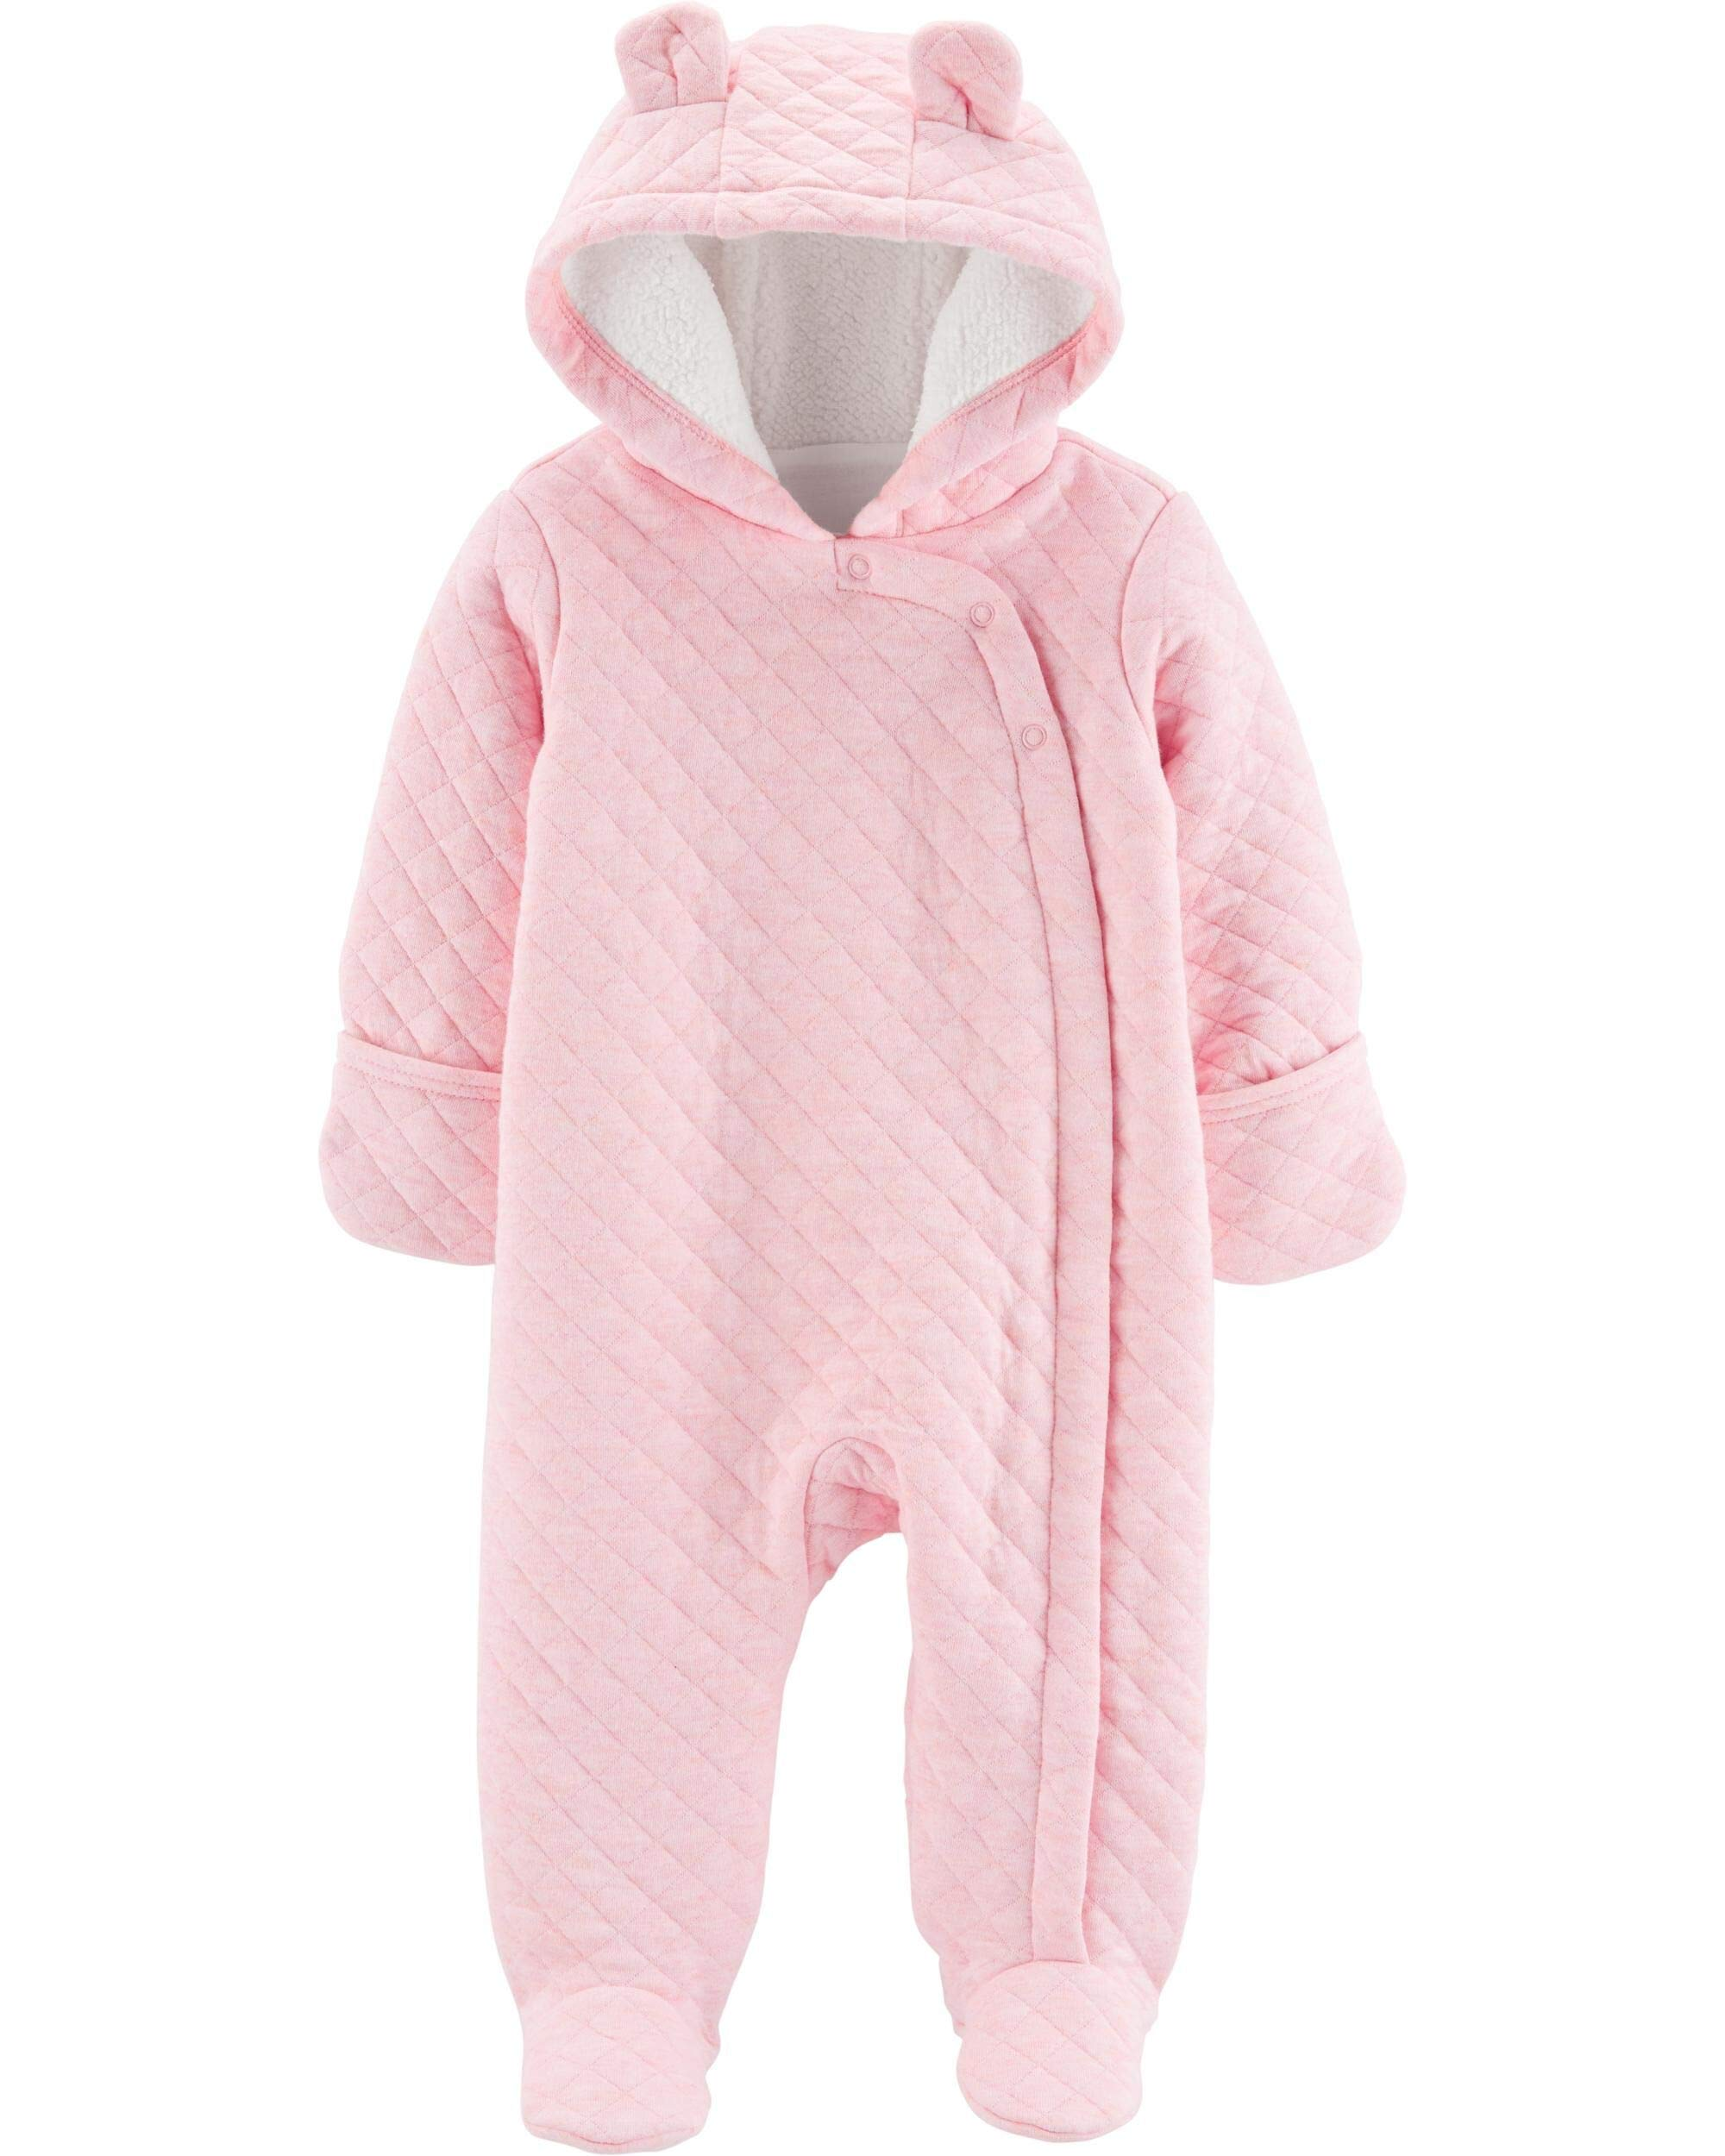 Carter's Baby Quilted Hooded Bunting, Pram, Light Pink, 9 Months by Carter's